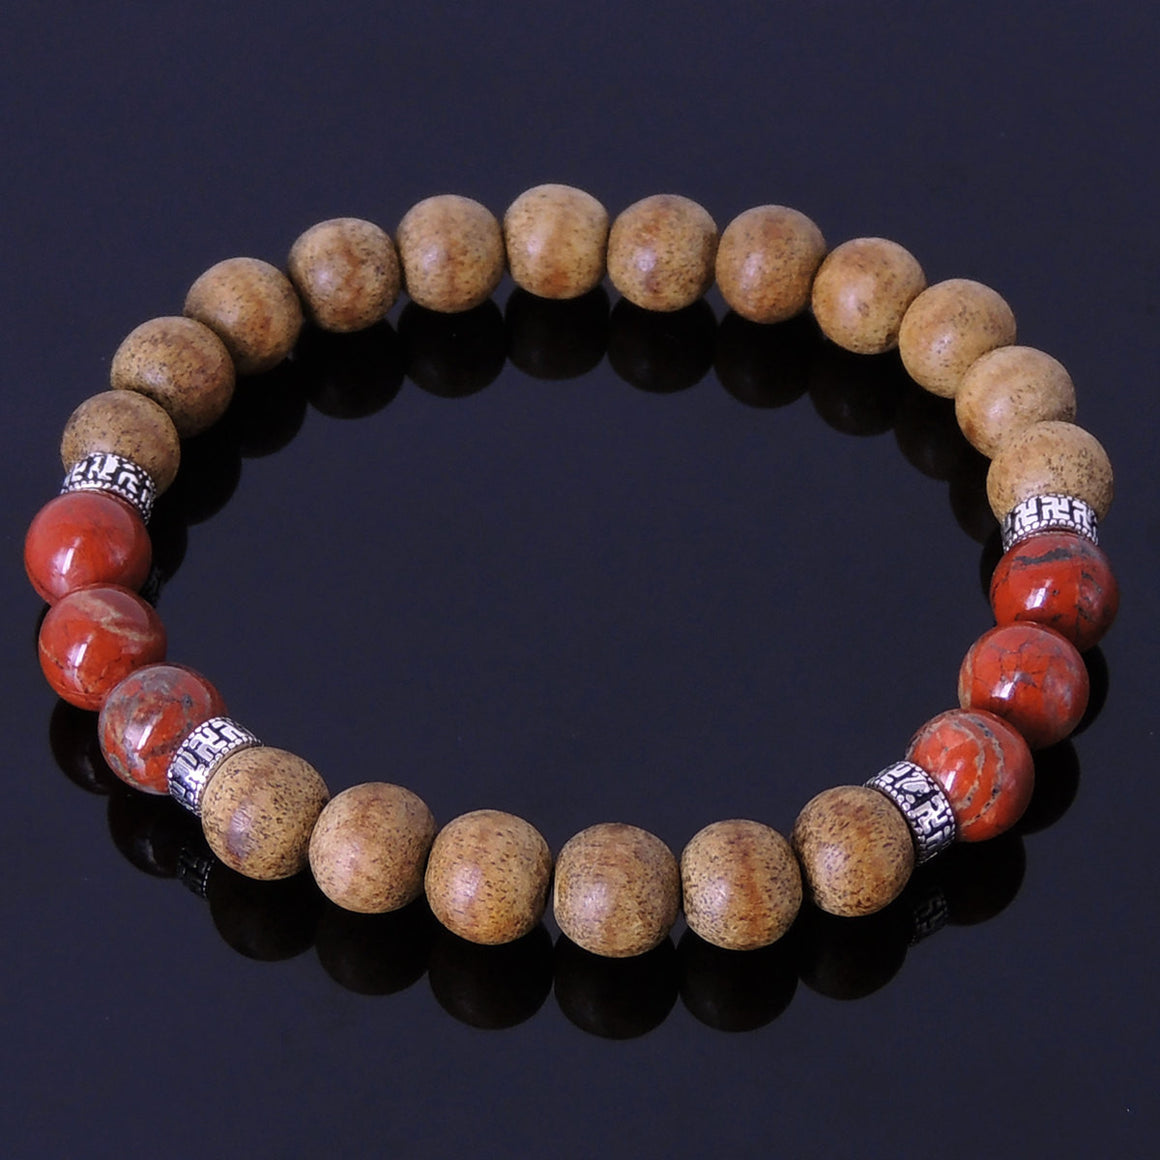 8mm Vietnam Agarwood & Jasper Stone Bracelet for Prayer & Meditation with S925 Sterling Silver Buddhism Spacer Beads - Handmade by Gem & Silver BR221